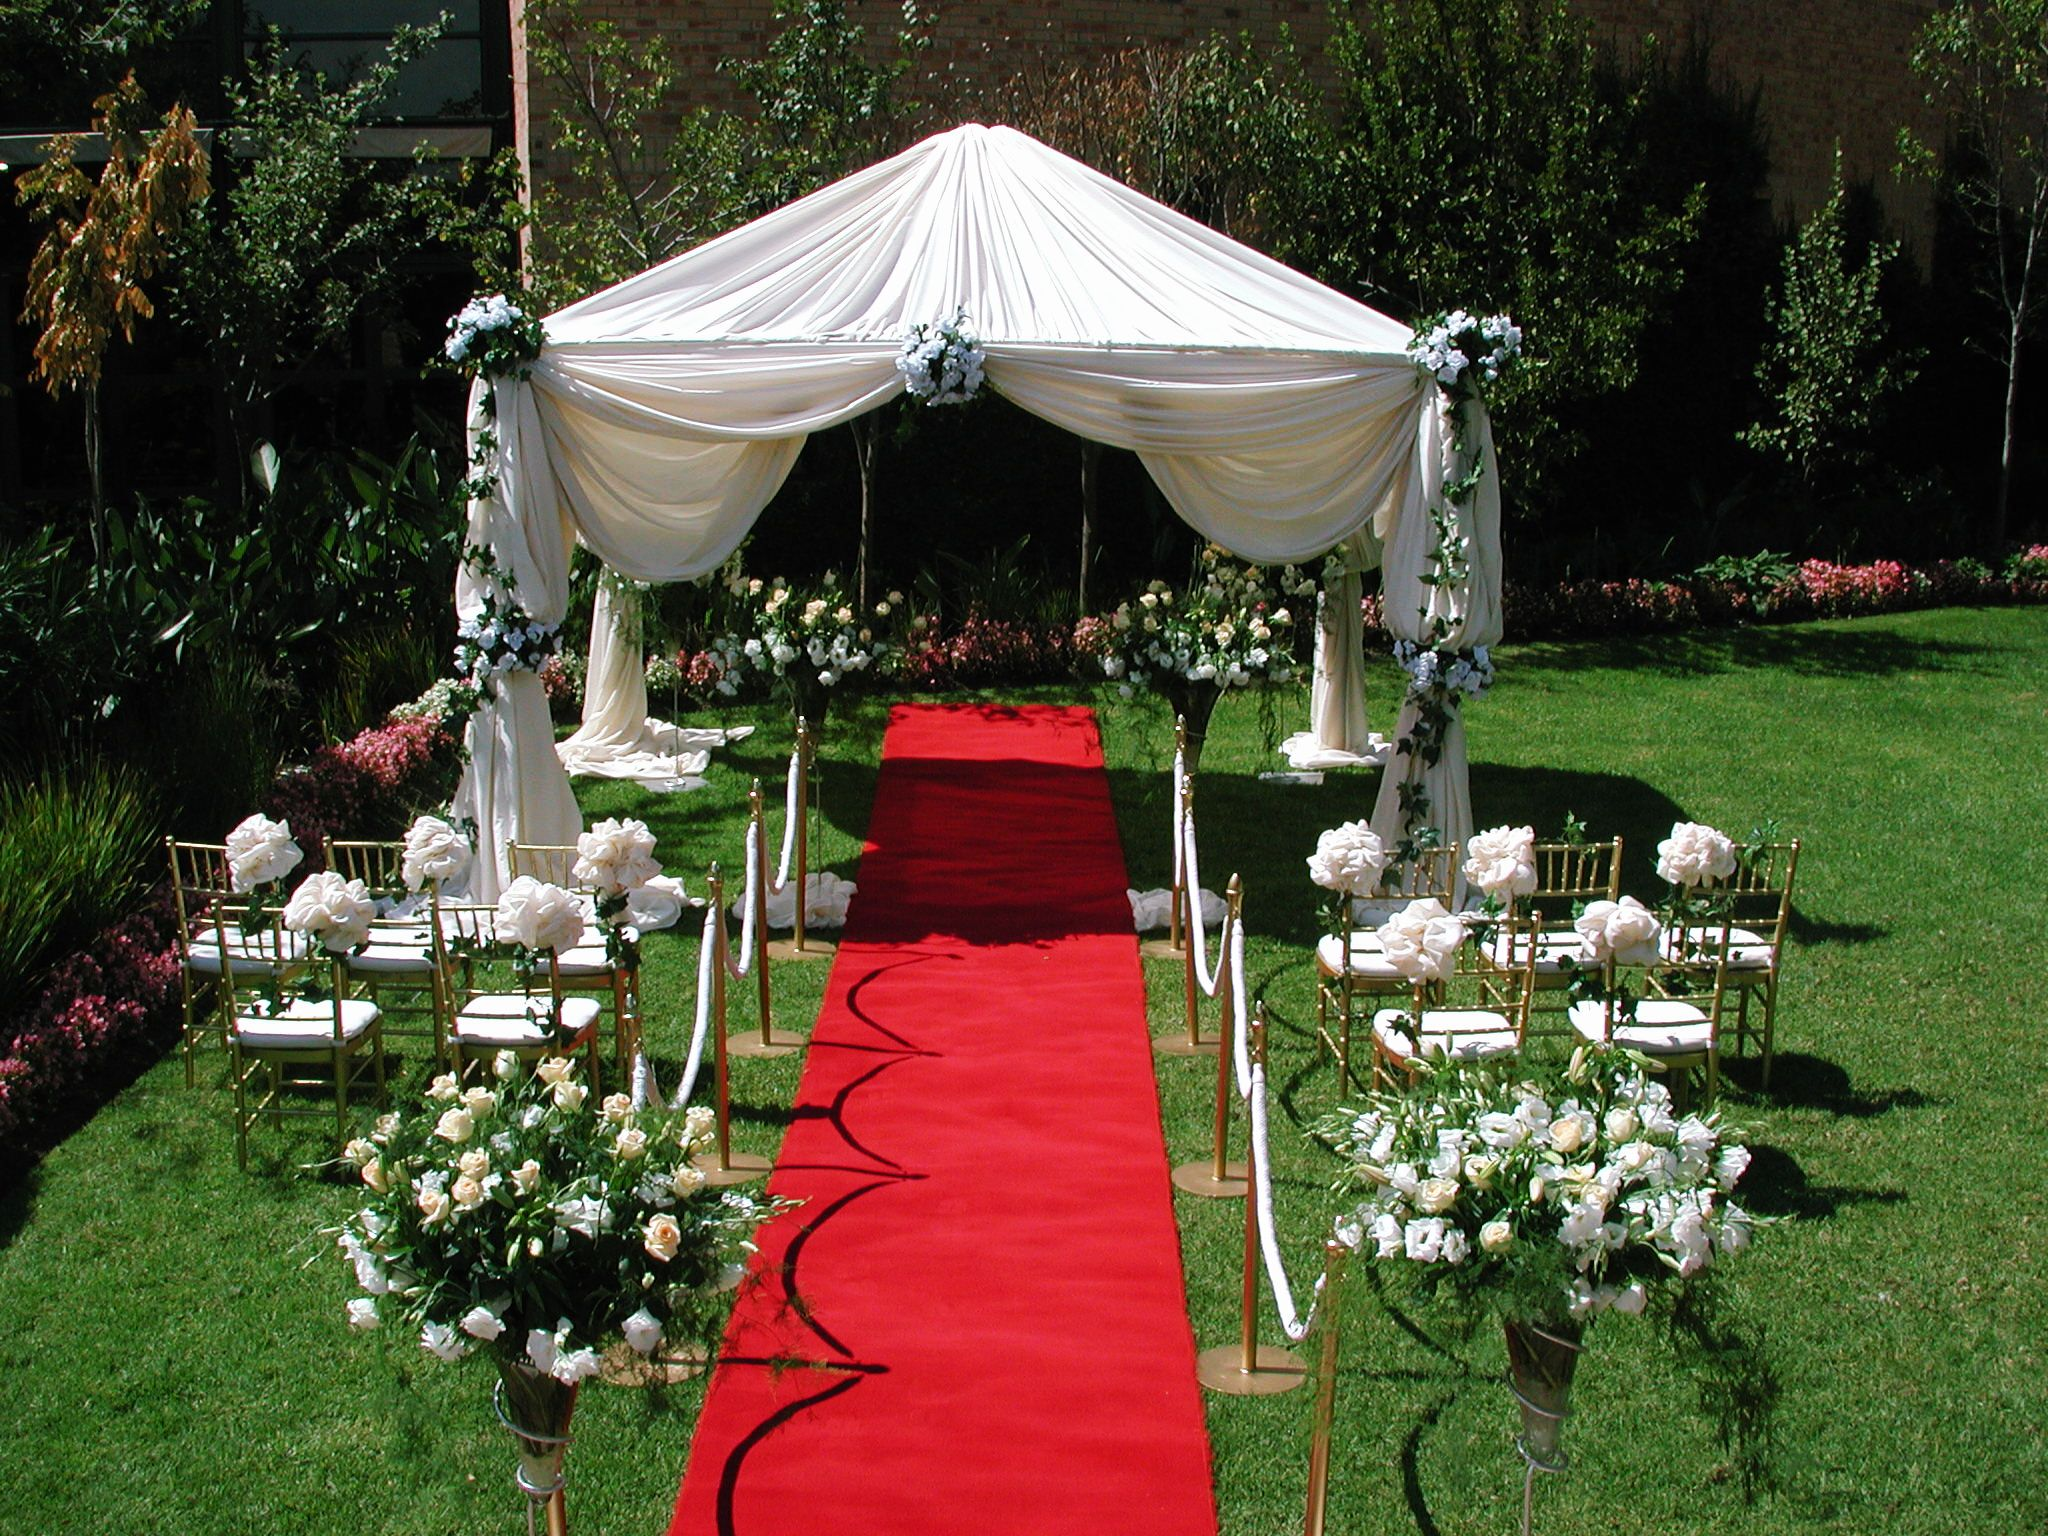 5 tips to decorate your outdoor wedding outdoor wedding wedding themes wedding decor outdoor wedding decoration ideas on a budget wedding junglespirit Gallery